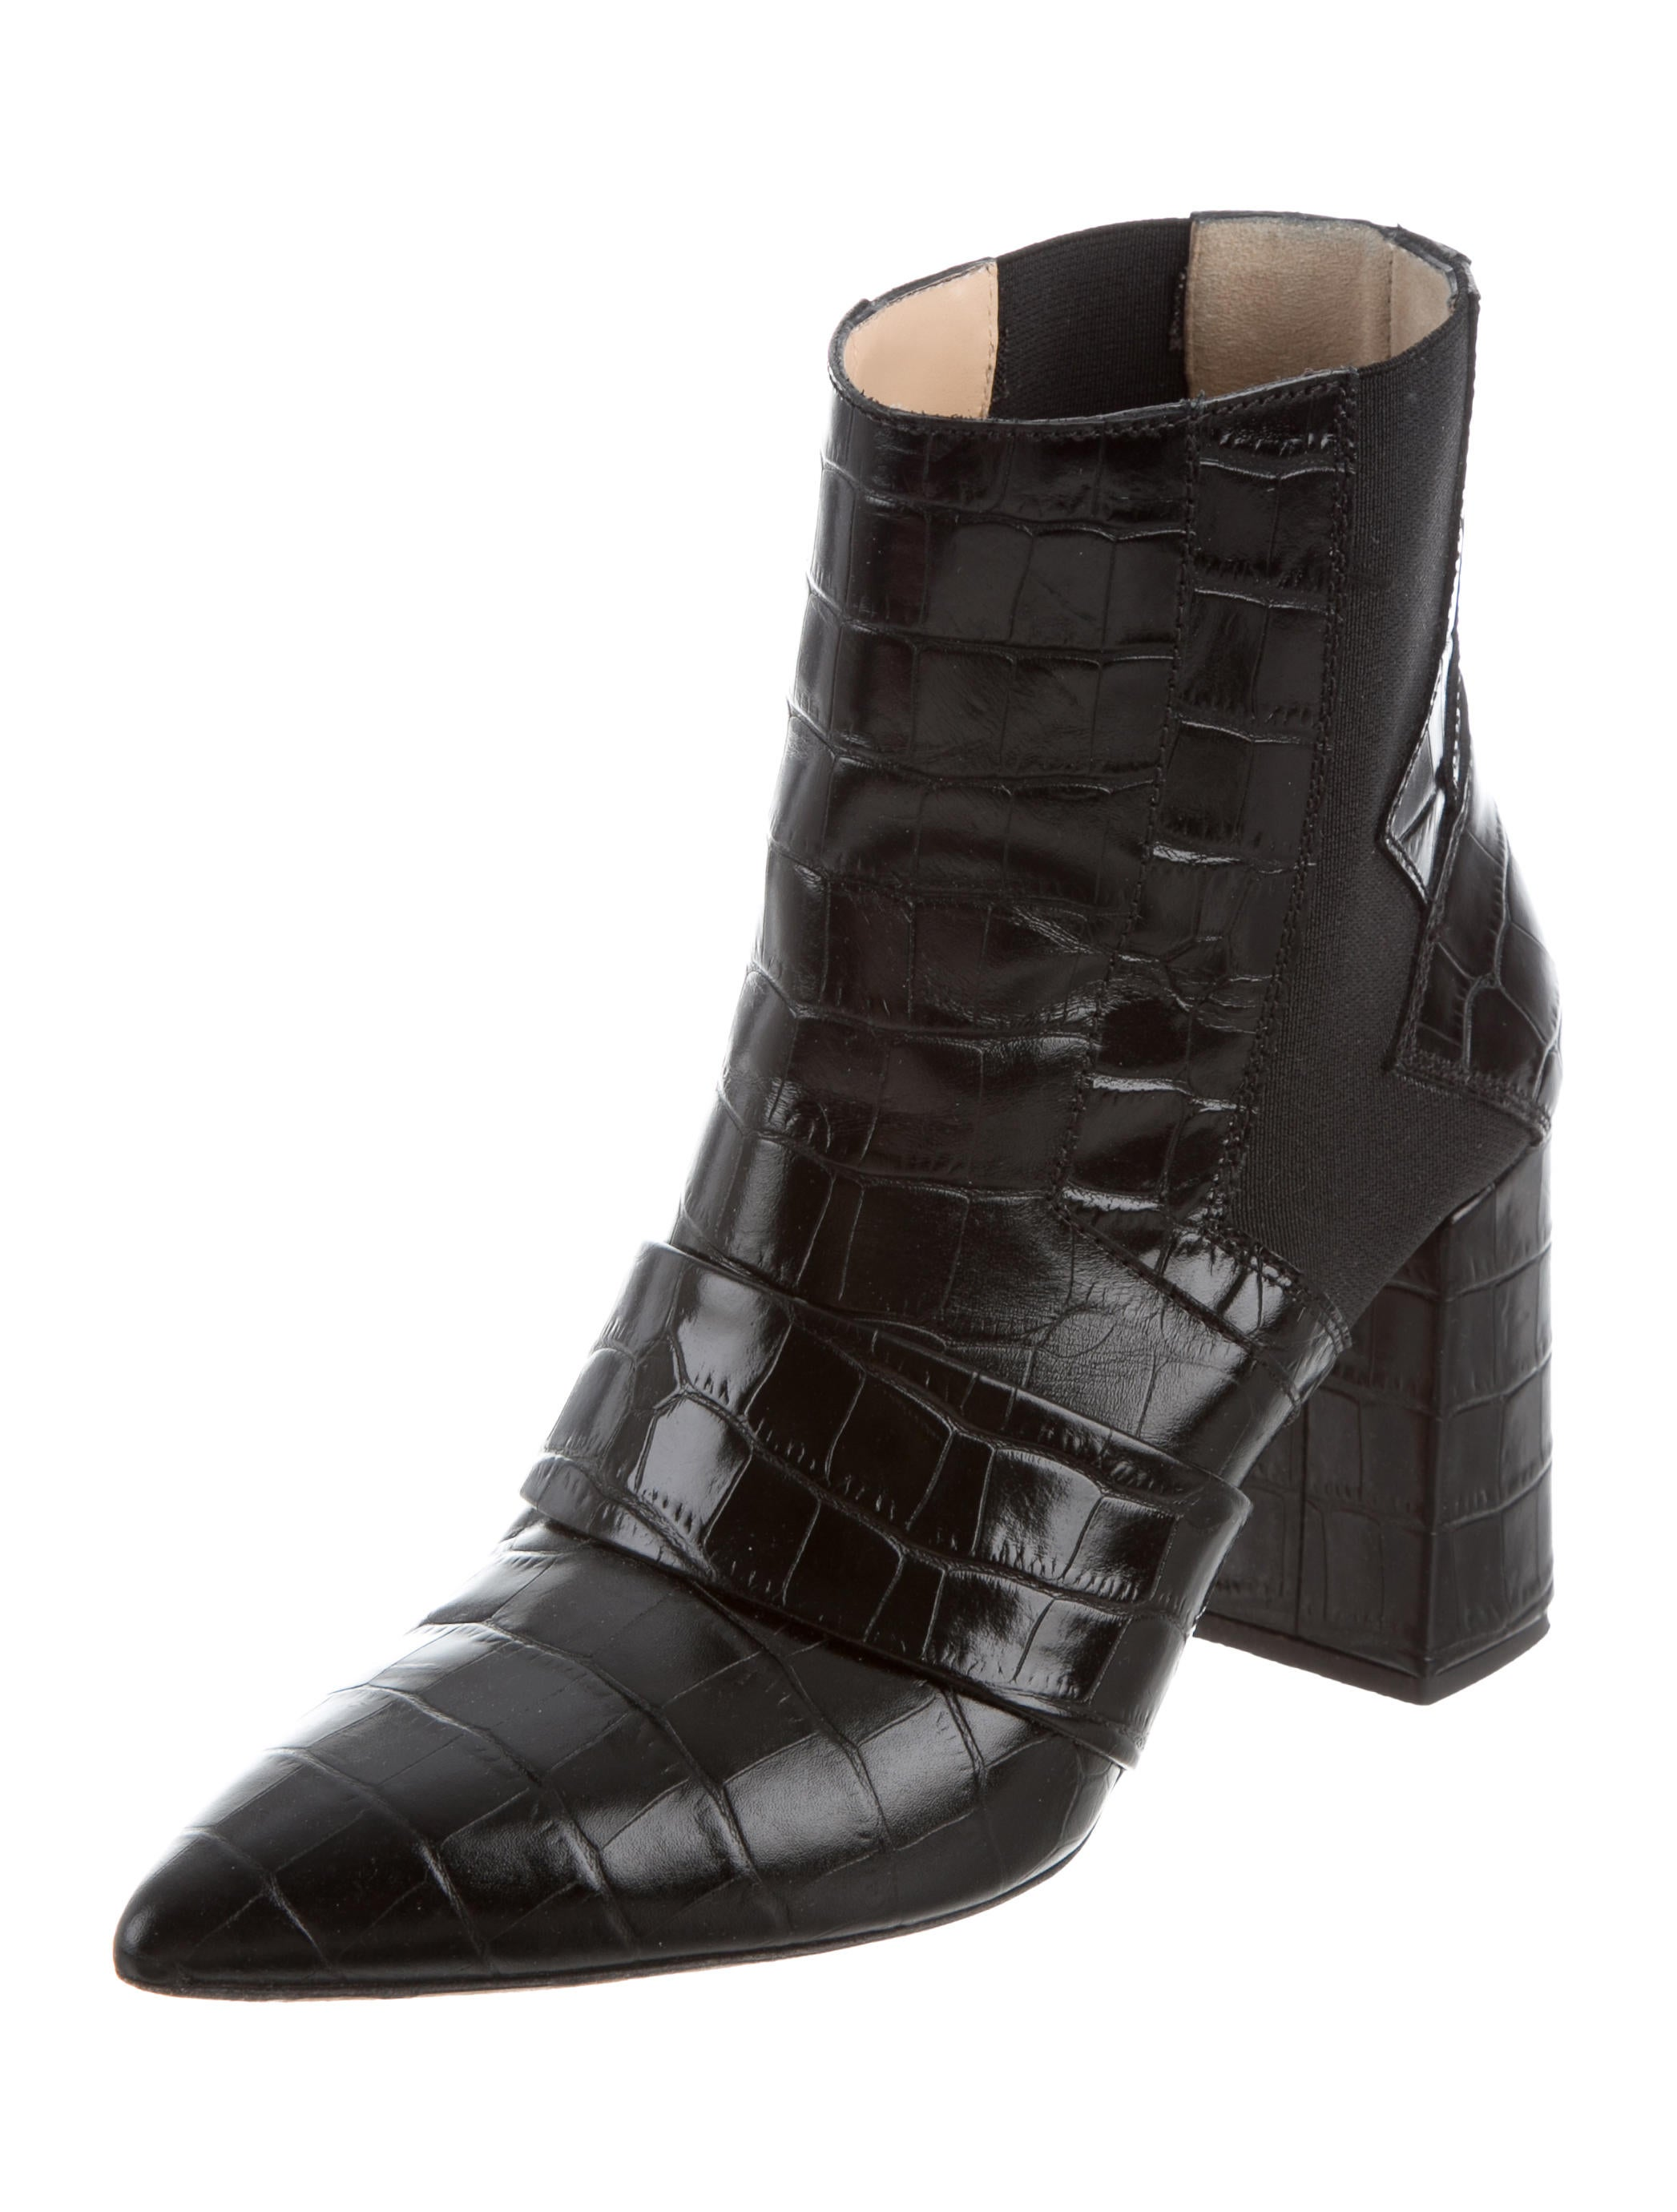 Jerome C. Rousseau Embossed Pointed-Toe Ankle Boots buy cheap cheap get authentic cheap price cheap really discount clearance store supply sale online h2X9lBWW2C